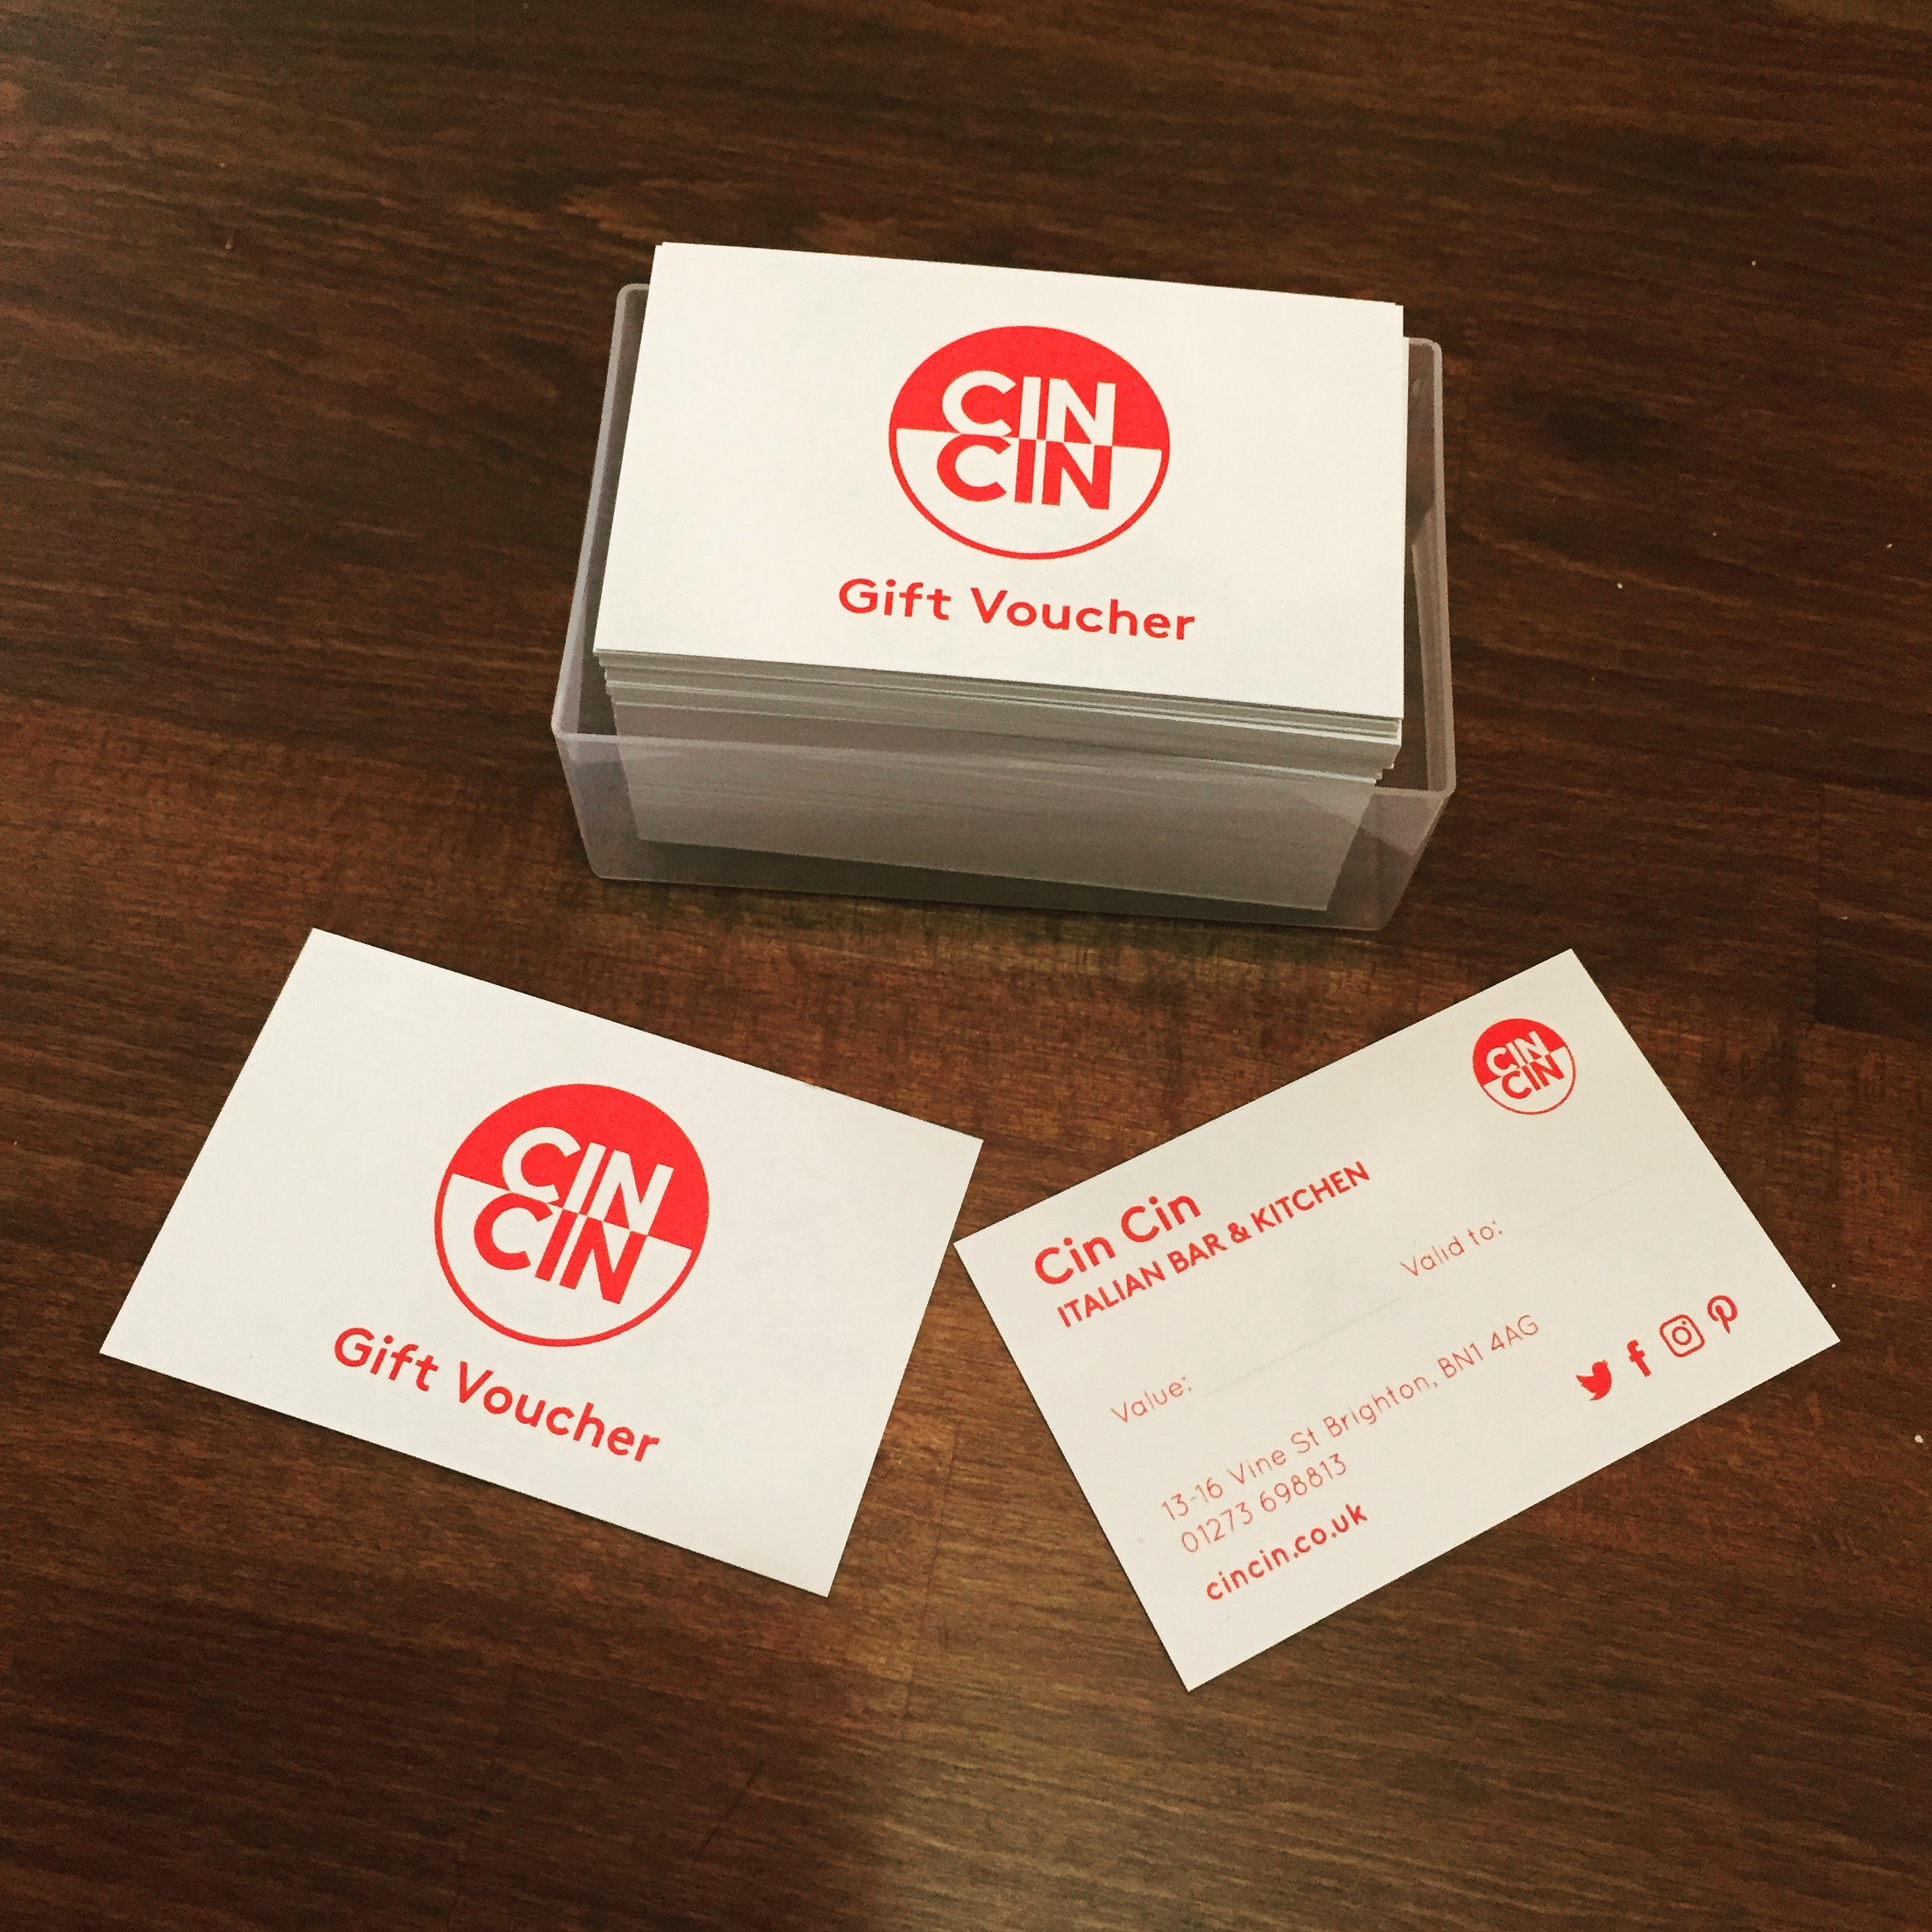 Cin Cin Italian counter dining gift vouchers